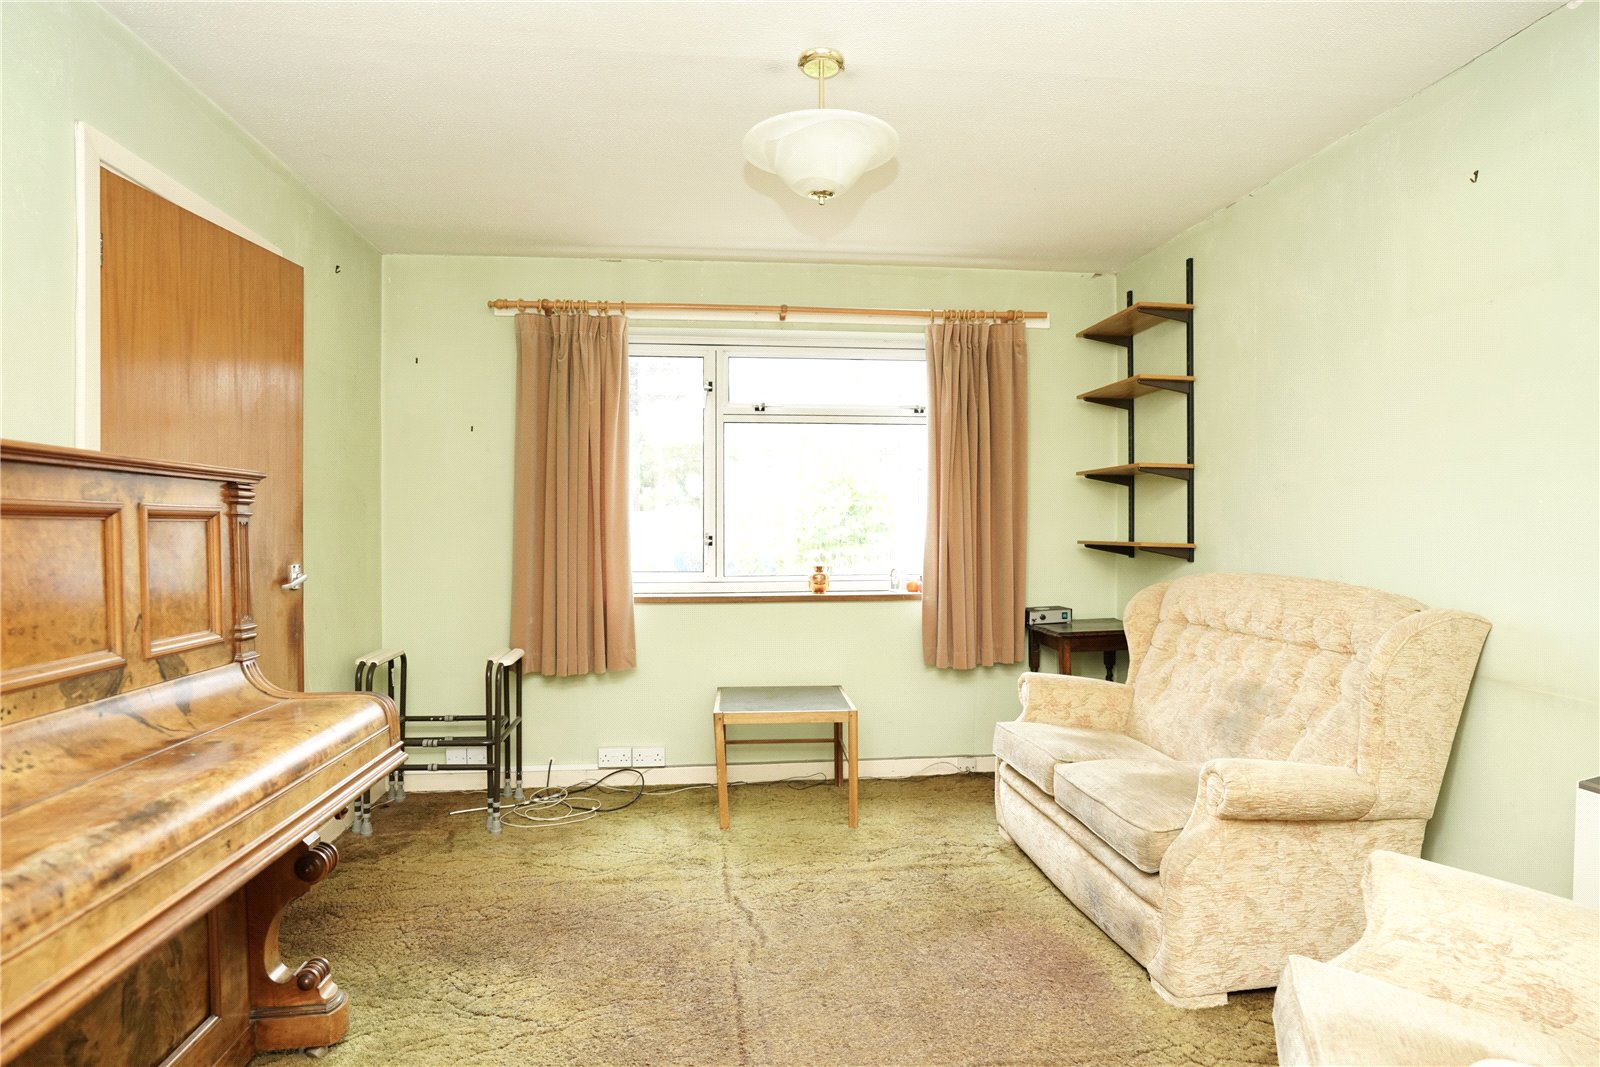 3 bed house for sale in Kenilworth Close, Eaton Socon 3